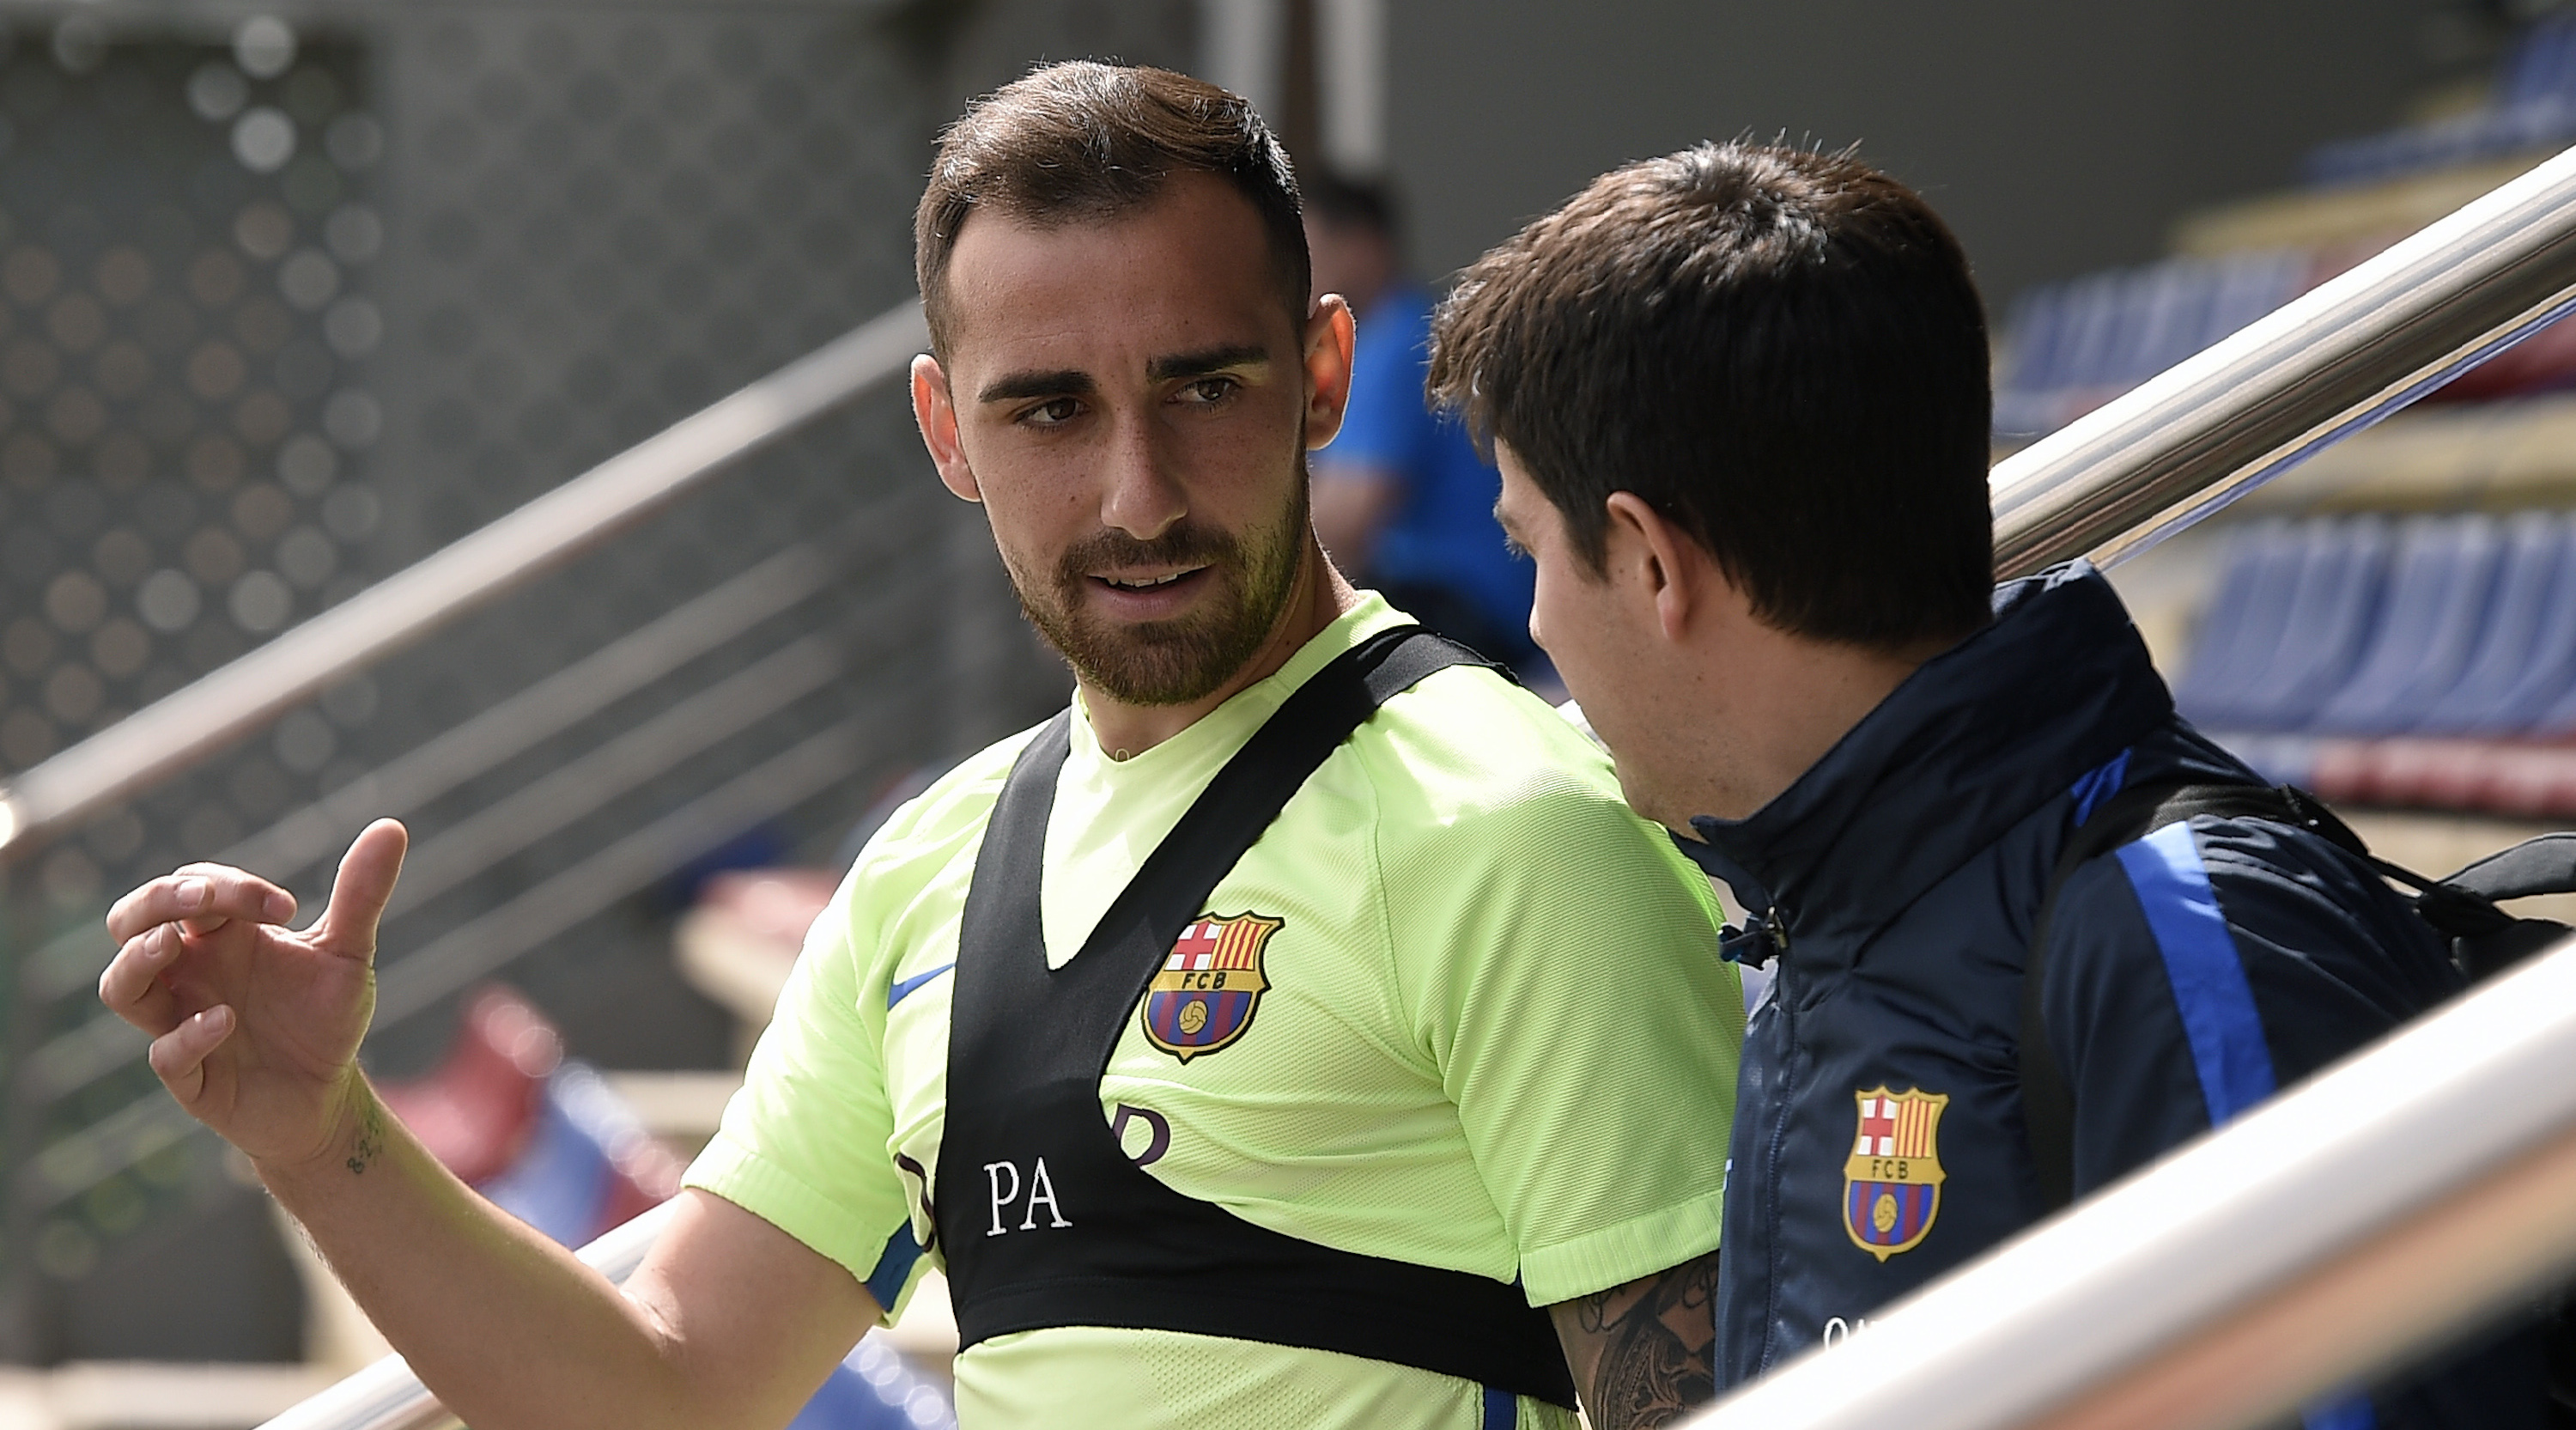 Barcelona's forward Paco Alcacer (L) chats with a teammate as he arrives for a training session at the Sports Center FC Barcelona Joan Gamper in Sant Joan Despi, near Barcelona on May 5, 2017 / AFP PHOTO / LLUIS GENE (Photo credit should read LLUIS GENE/AFP/Getty Images)